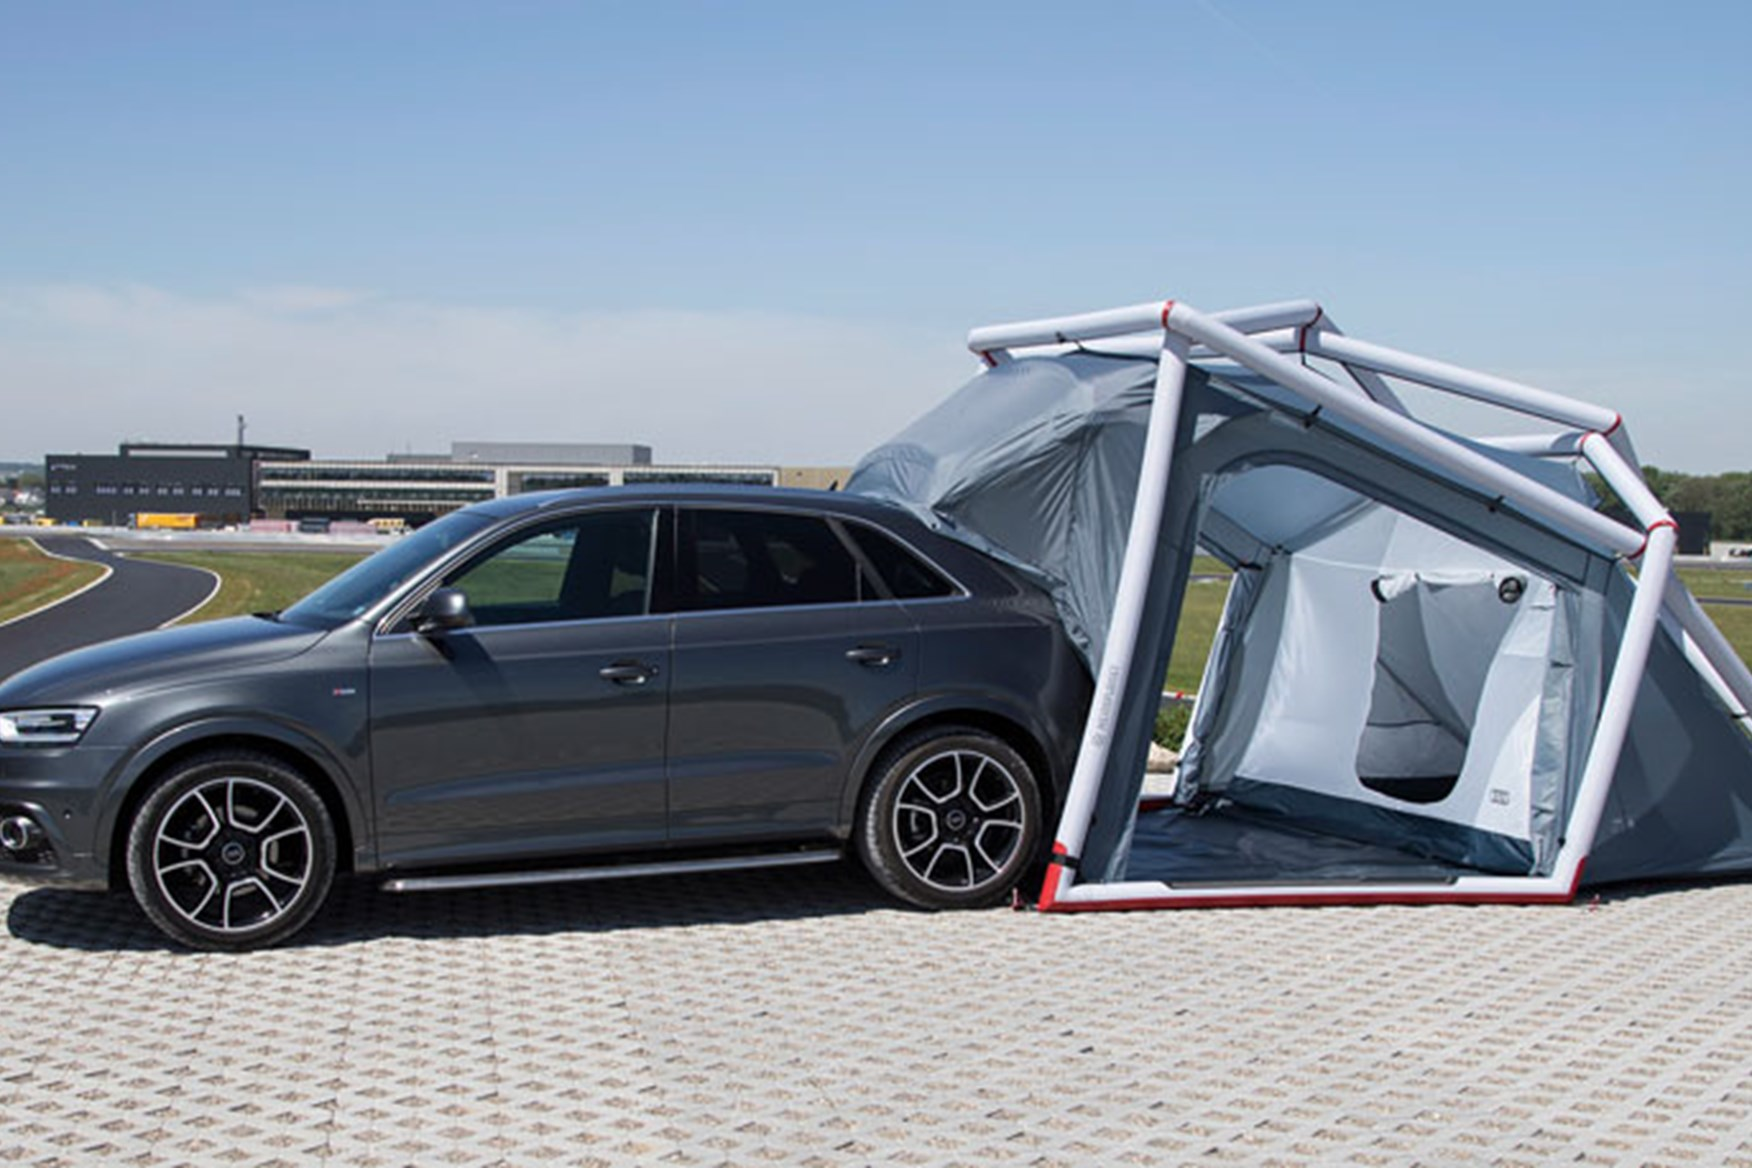 ... too The Audi pop-up tent clips onto the boot of the Q3 & Audi Q3 pop-up tent (2014): perfect for a murder mystery? by CAR ...